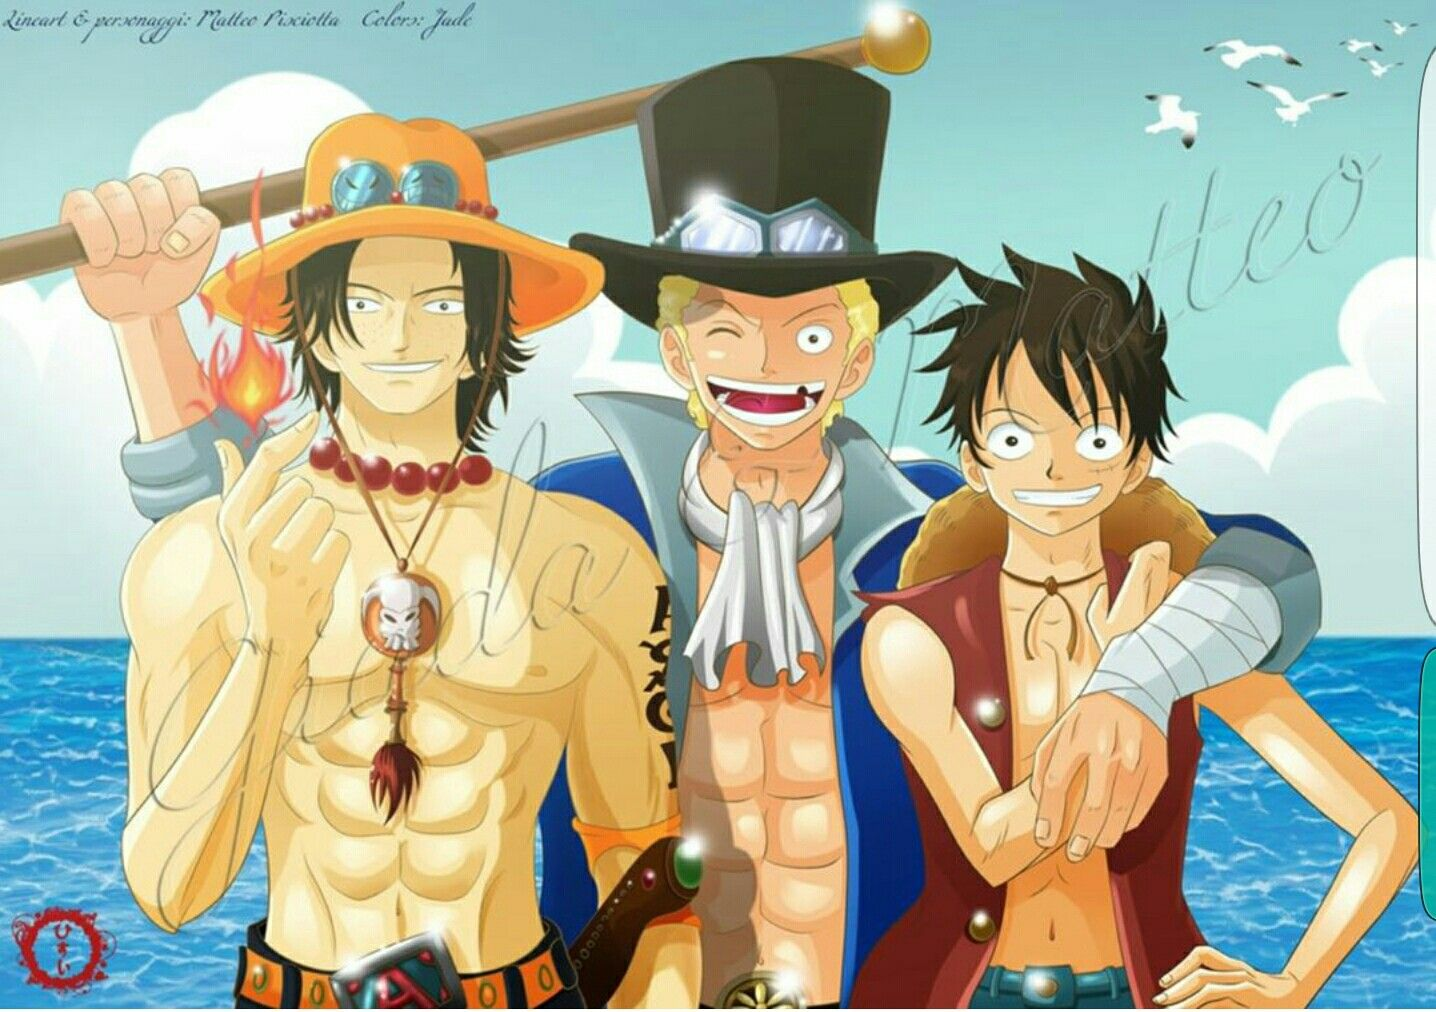 Luffy's brother